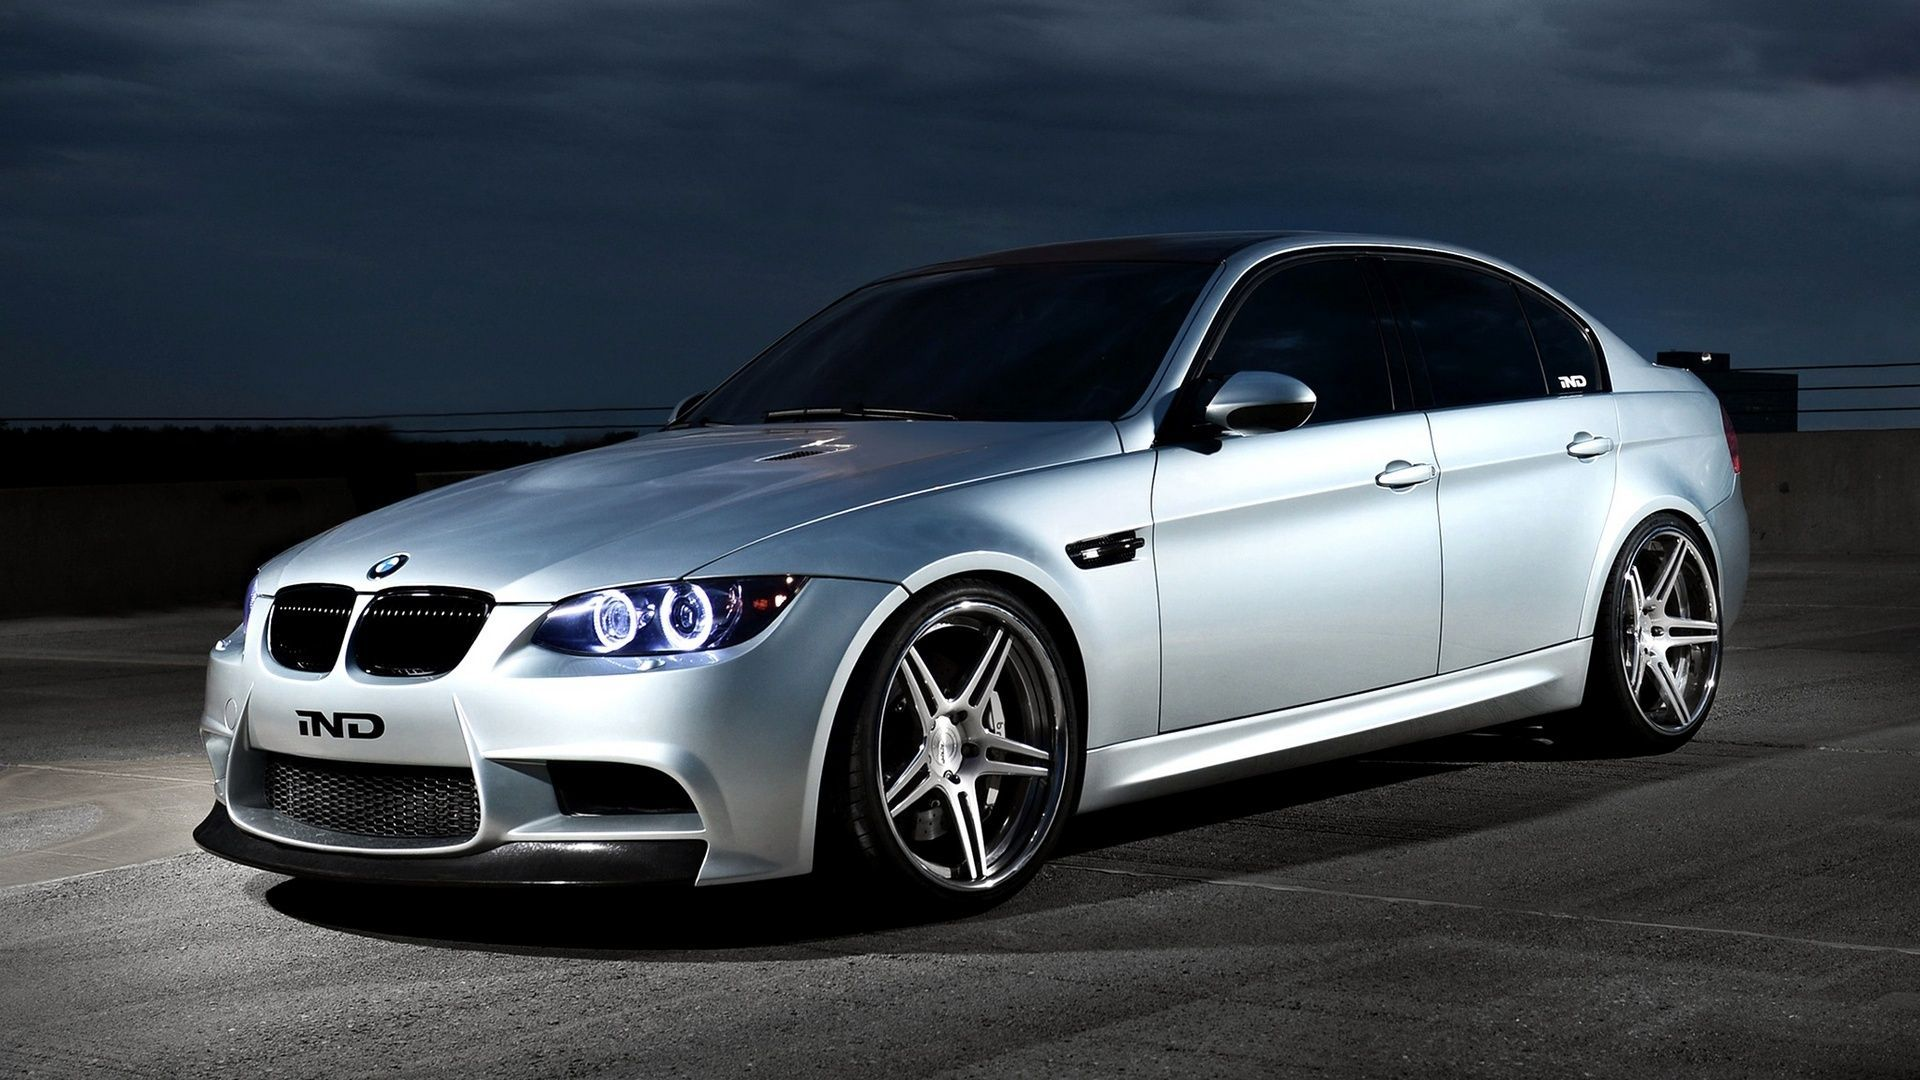 Huawei Wallpaper Hd 1080p Bmw E90 Wallpaper 31 1920x1080